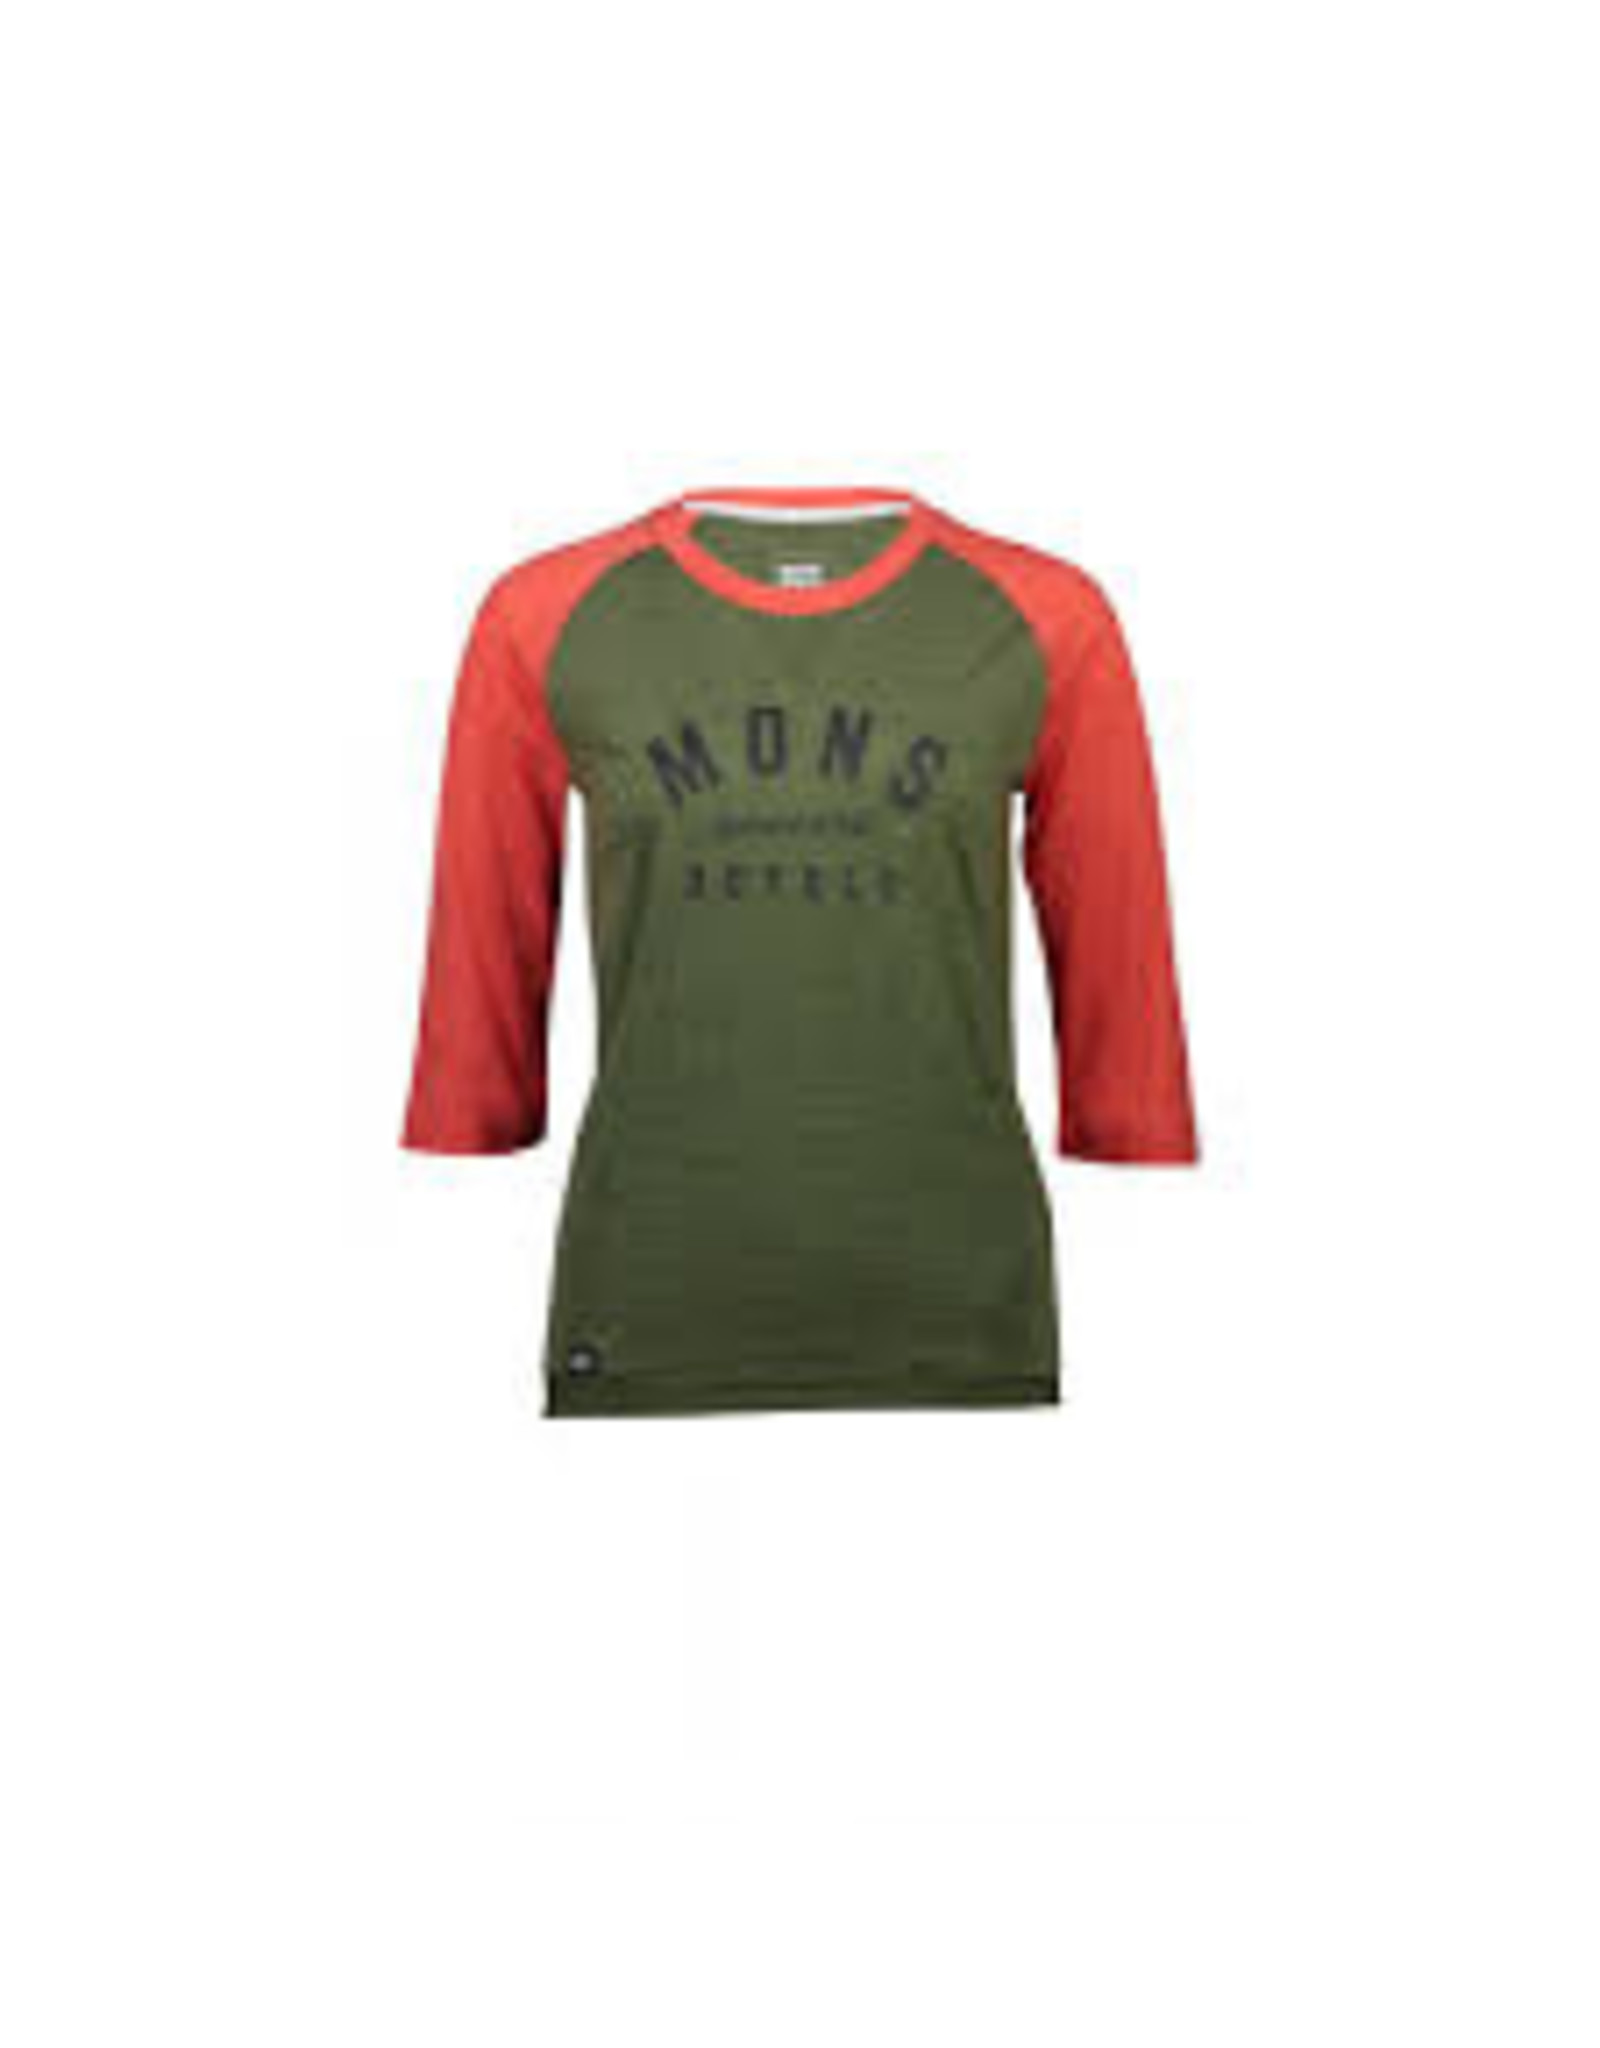 Mons Royale Mons Royale Womens Small Zephyr Lite 3/4 Tee Green / Orange